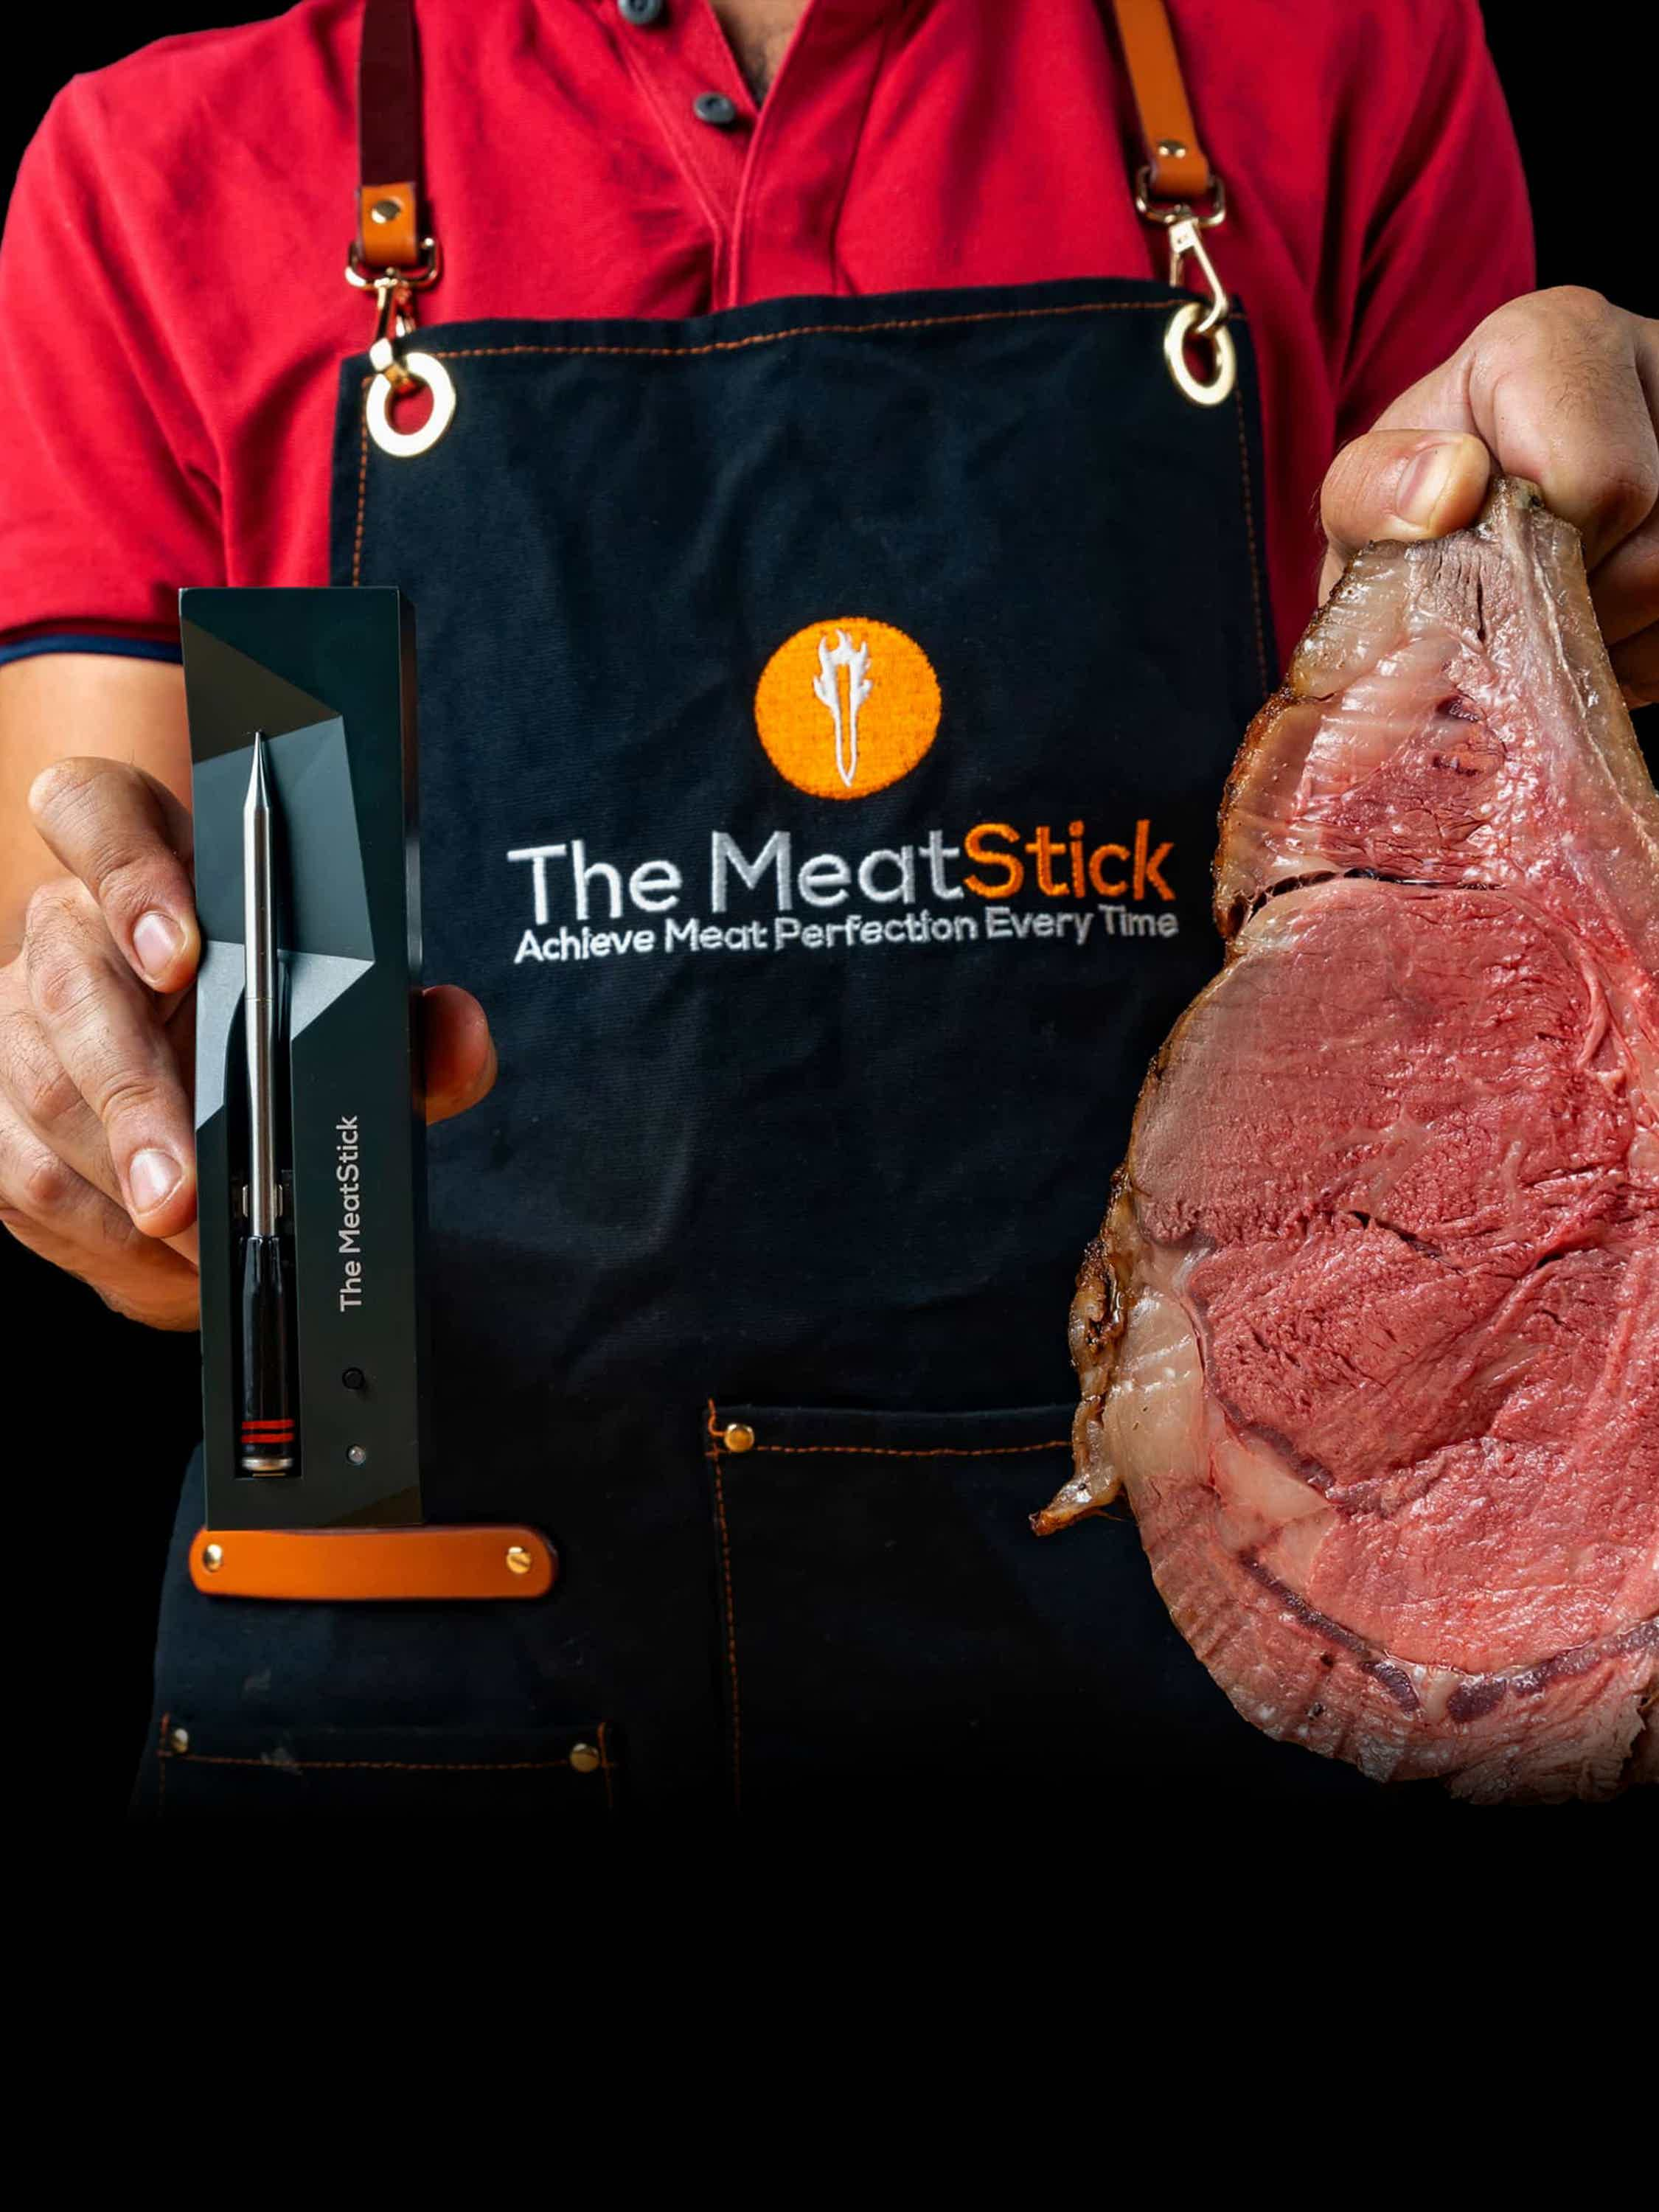 The MeatStick Achieve Meat Perfection Every Time